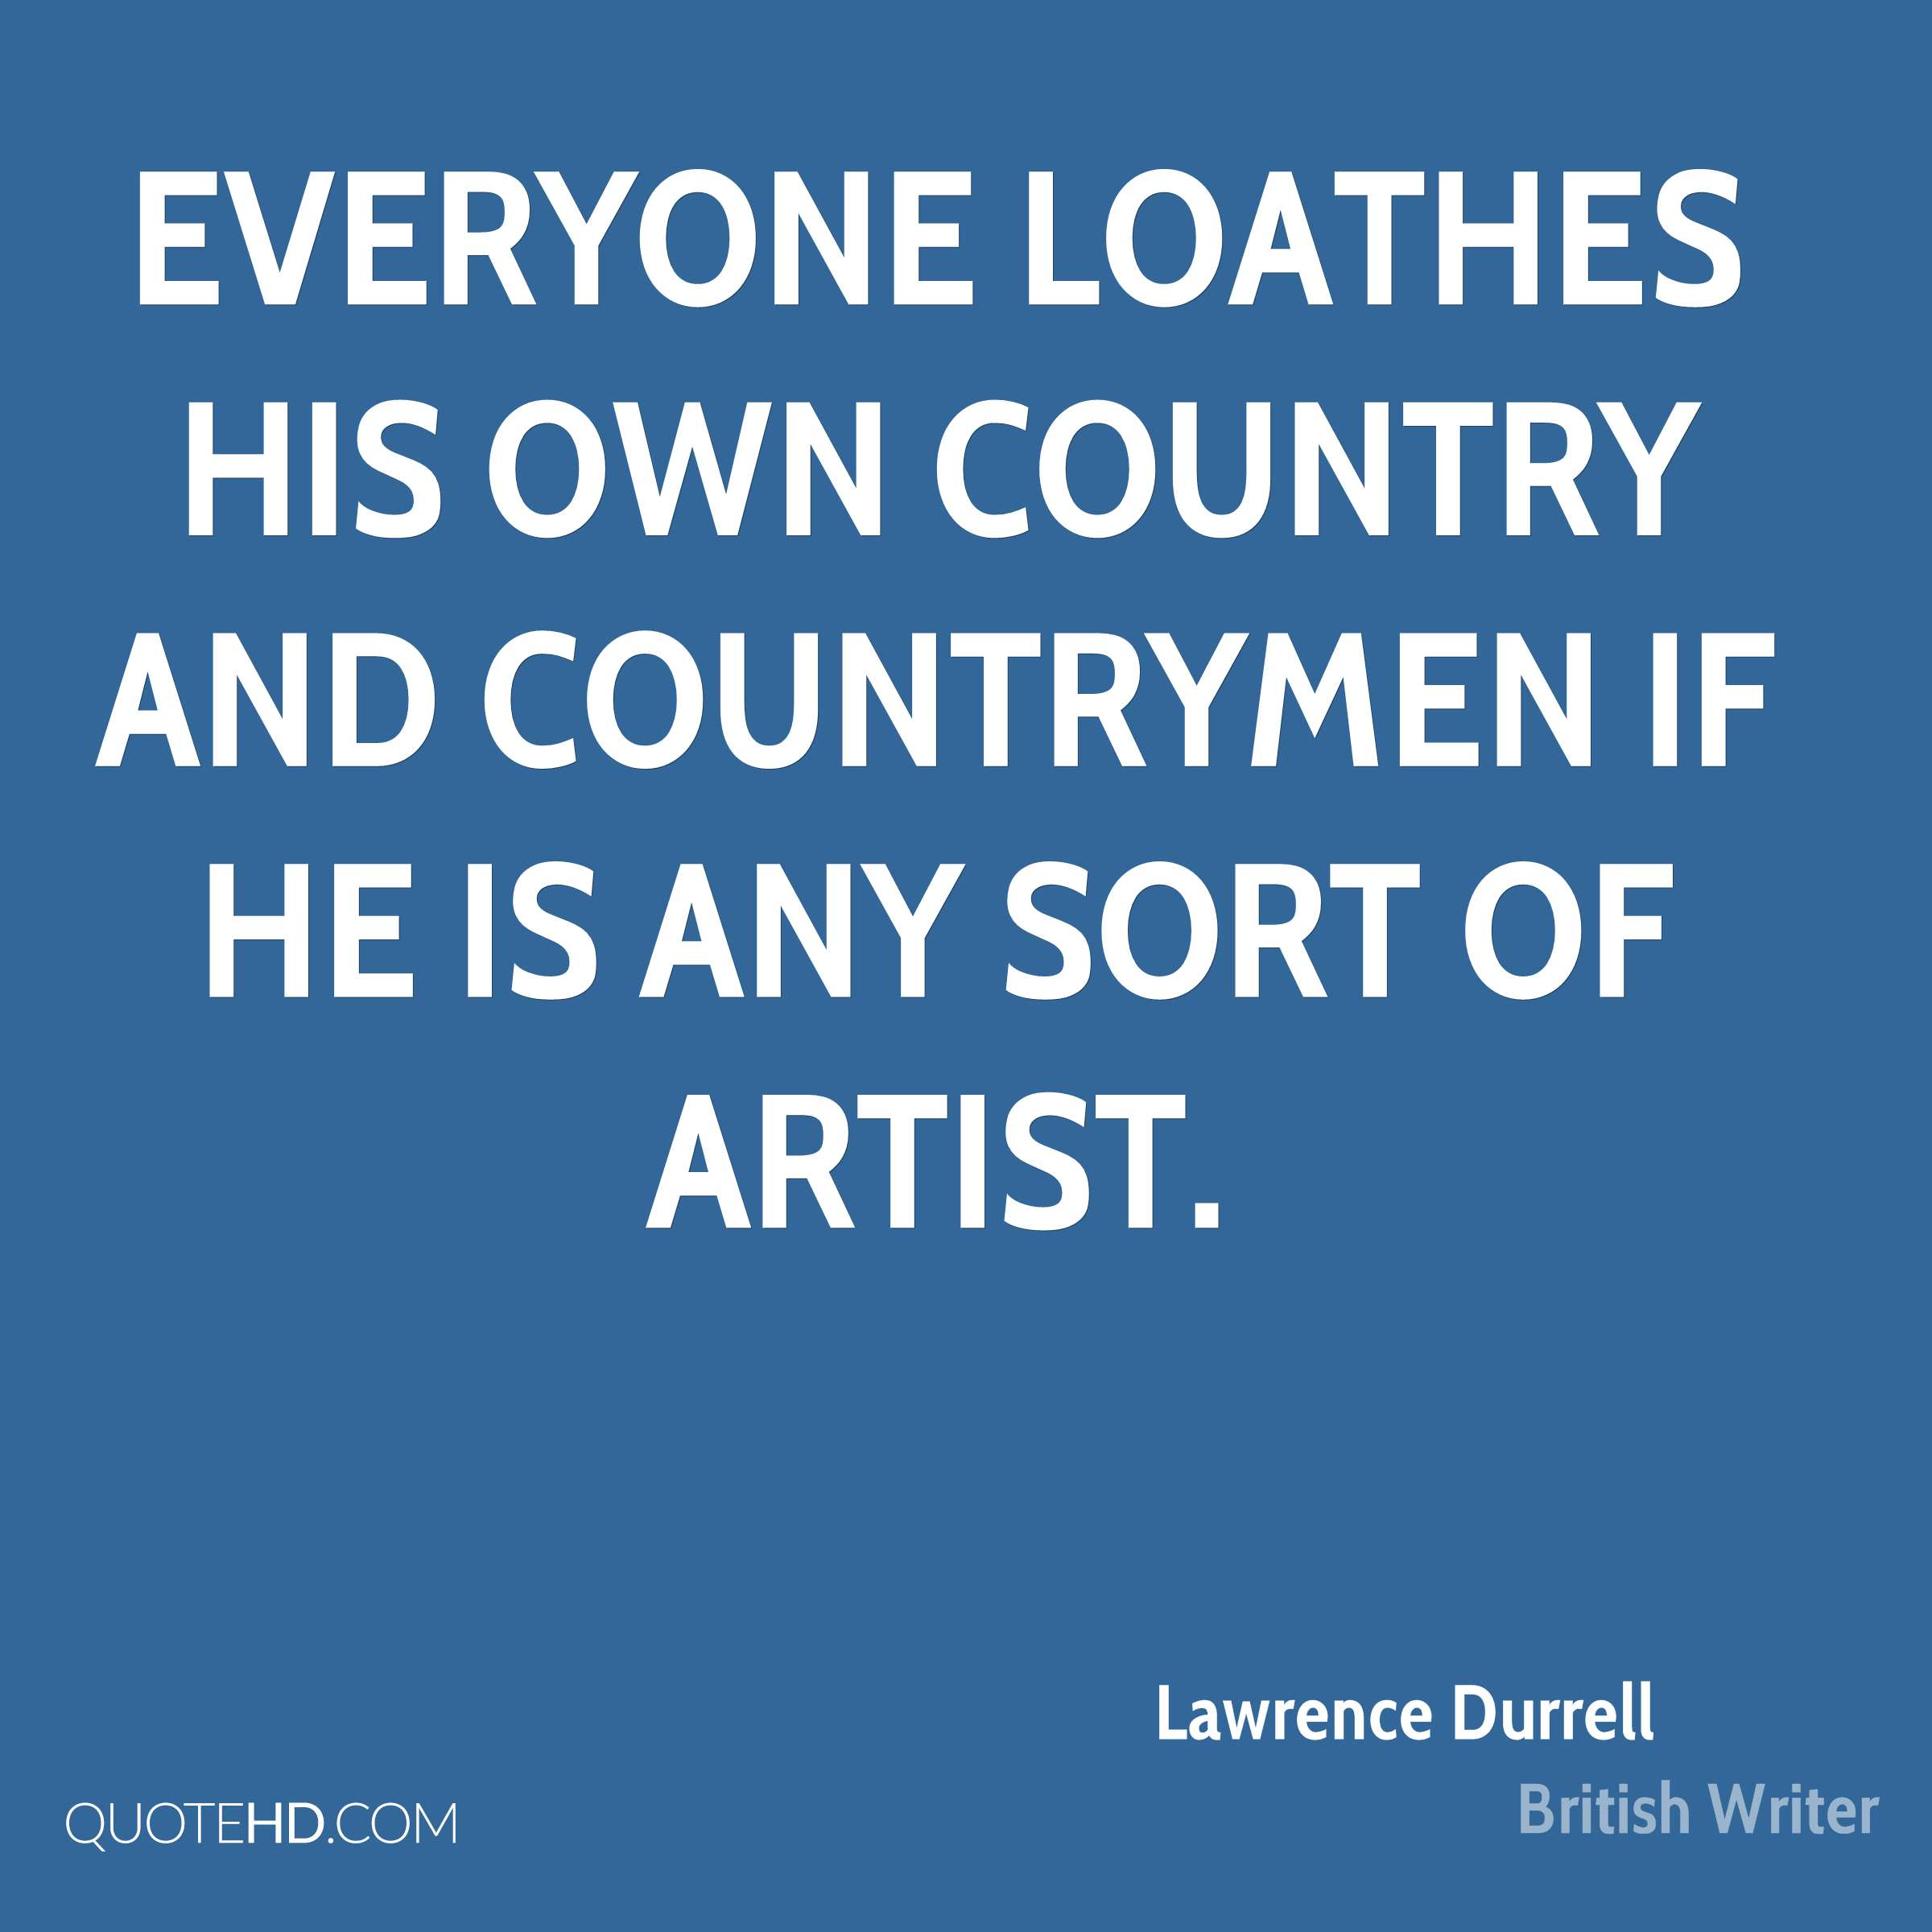 Everyone loathes his own country and countrymen if he is any sort of artist.